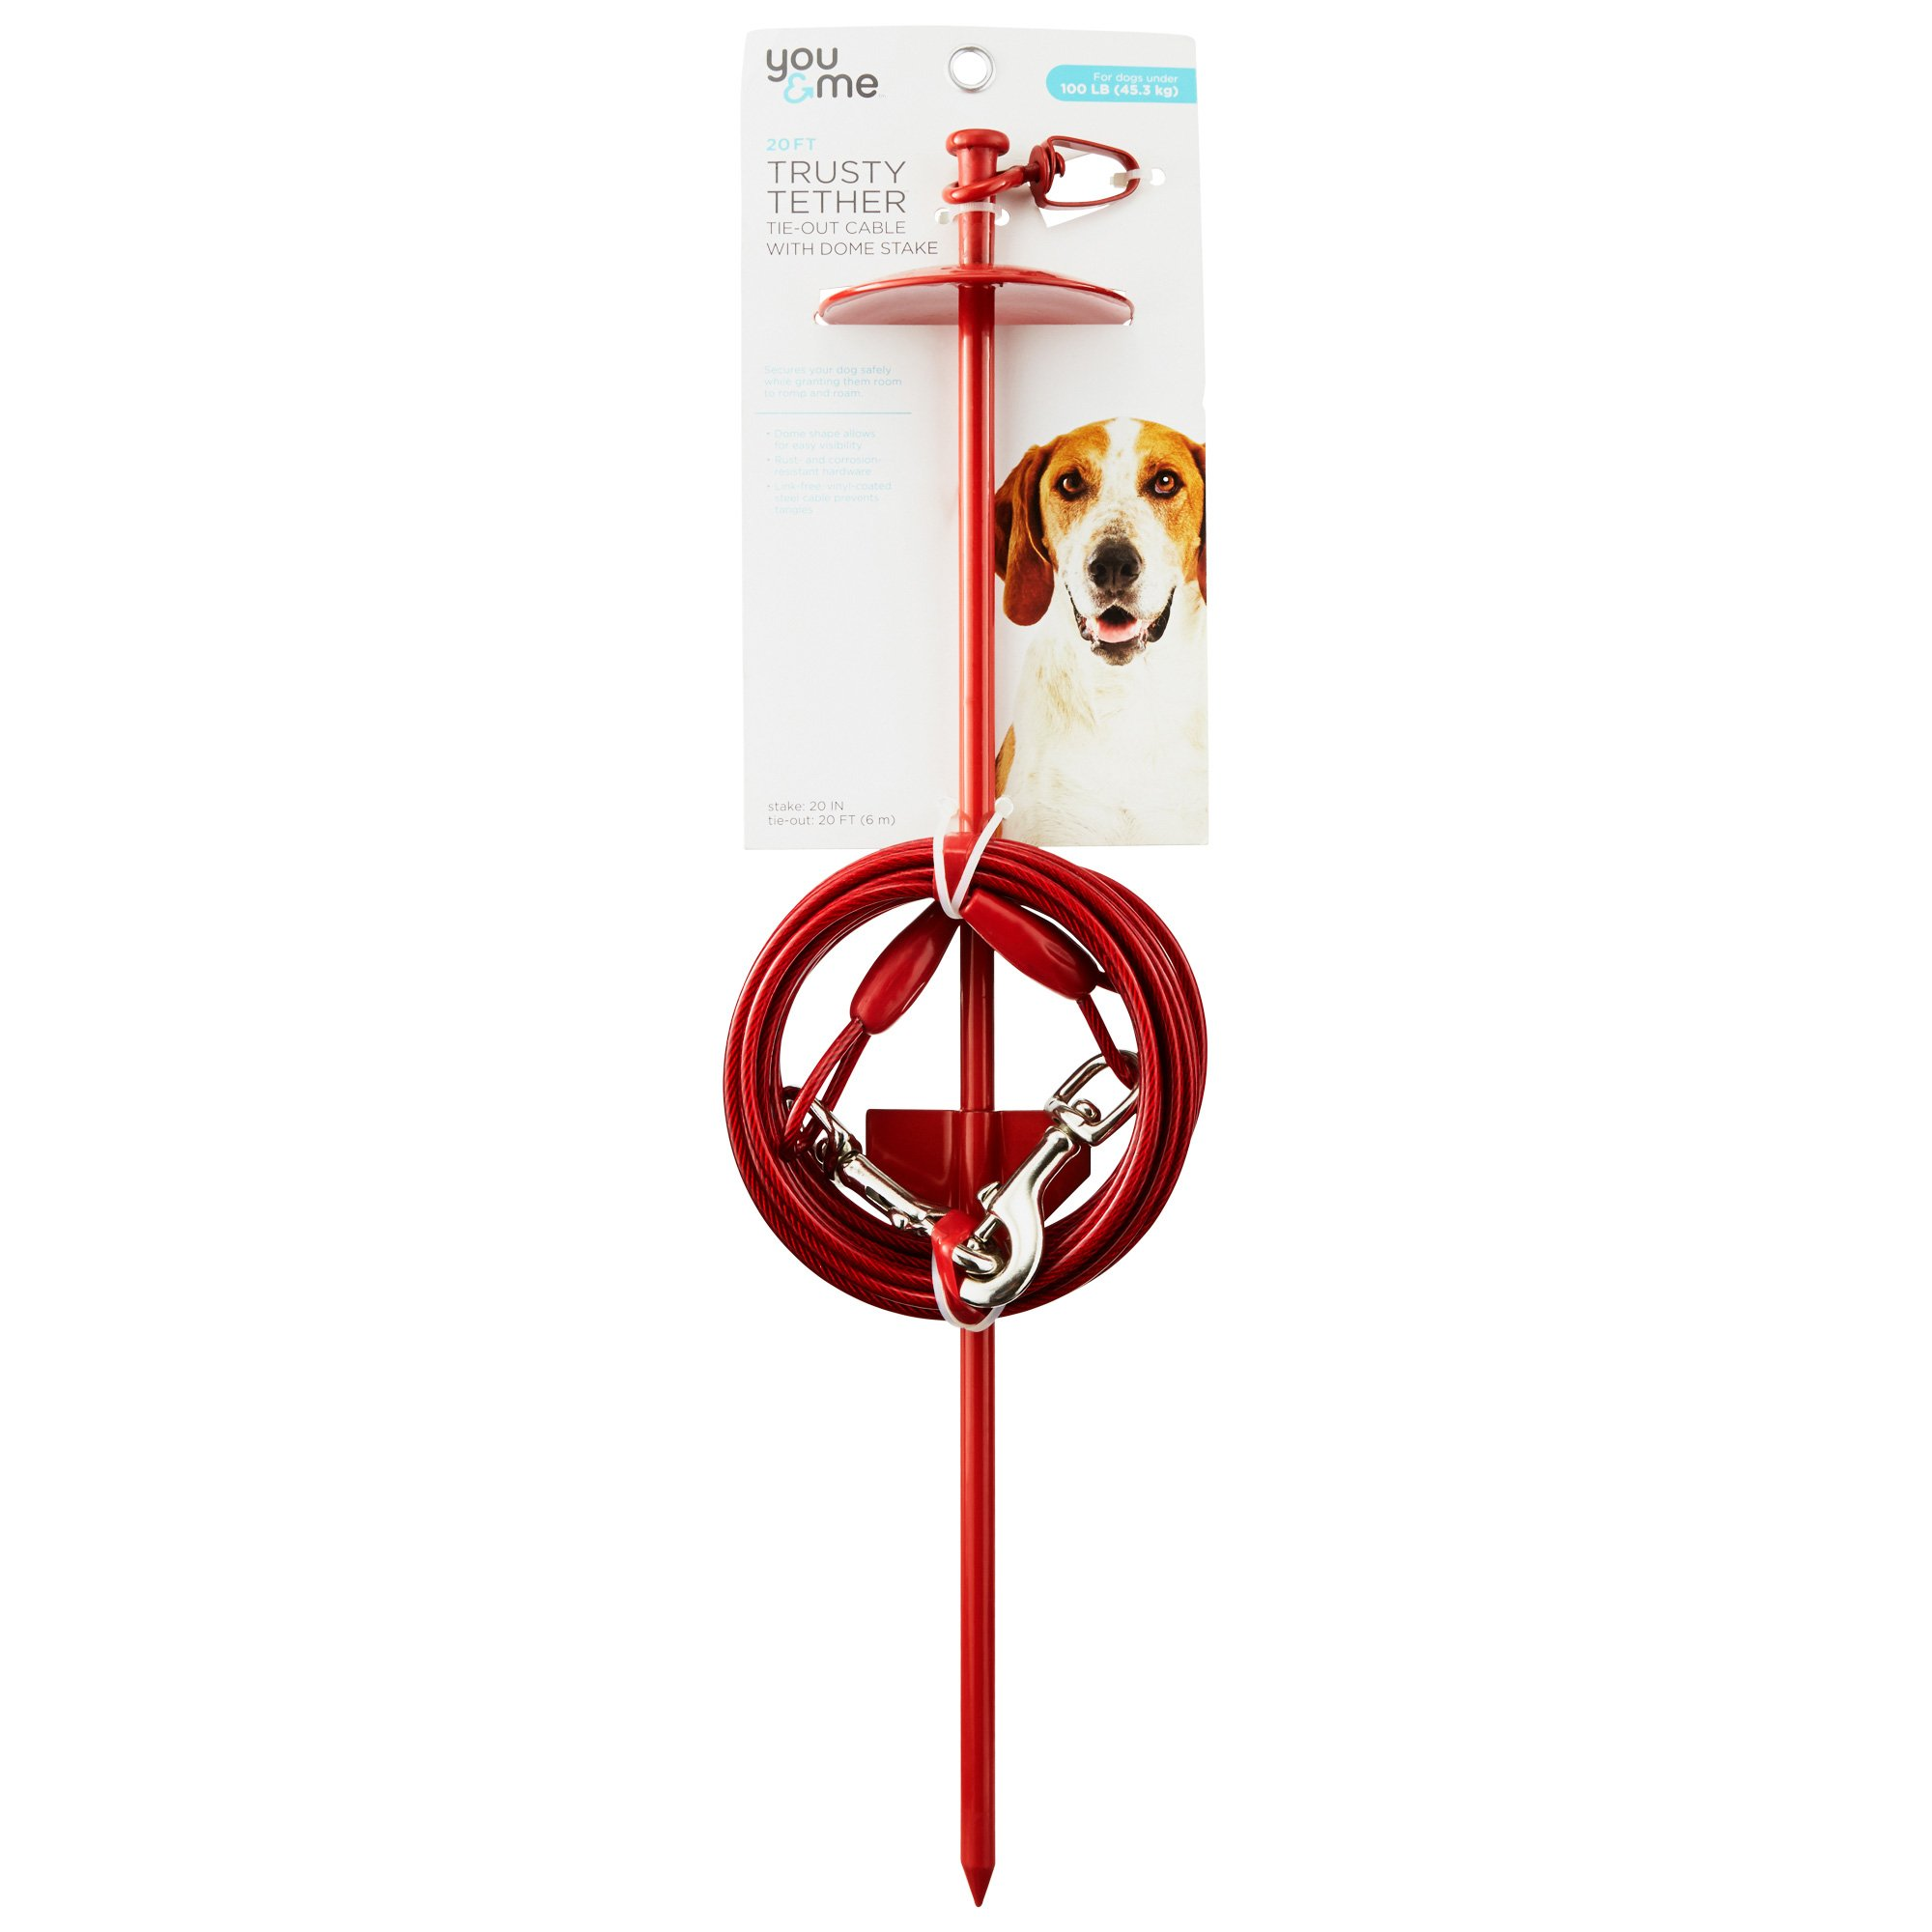 Image of You & Me Trusty Tether Red Tie-Out Cable with Dome Stake, Large